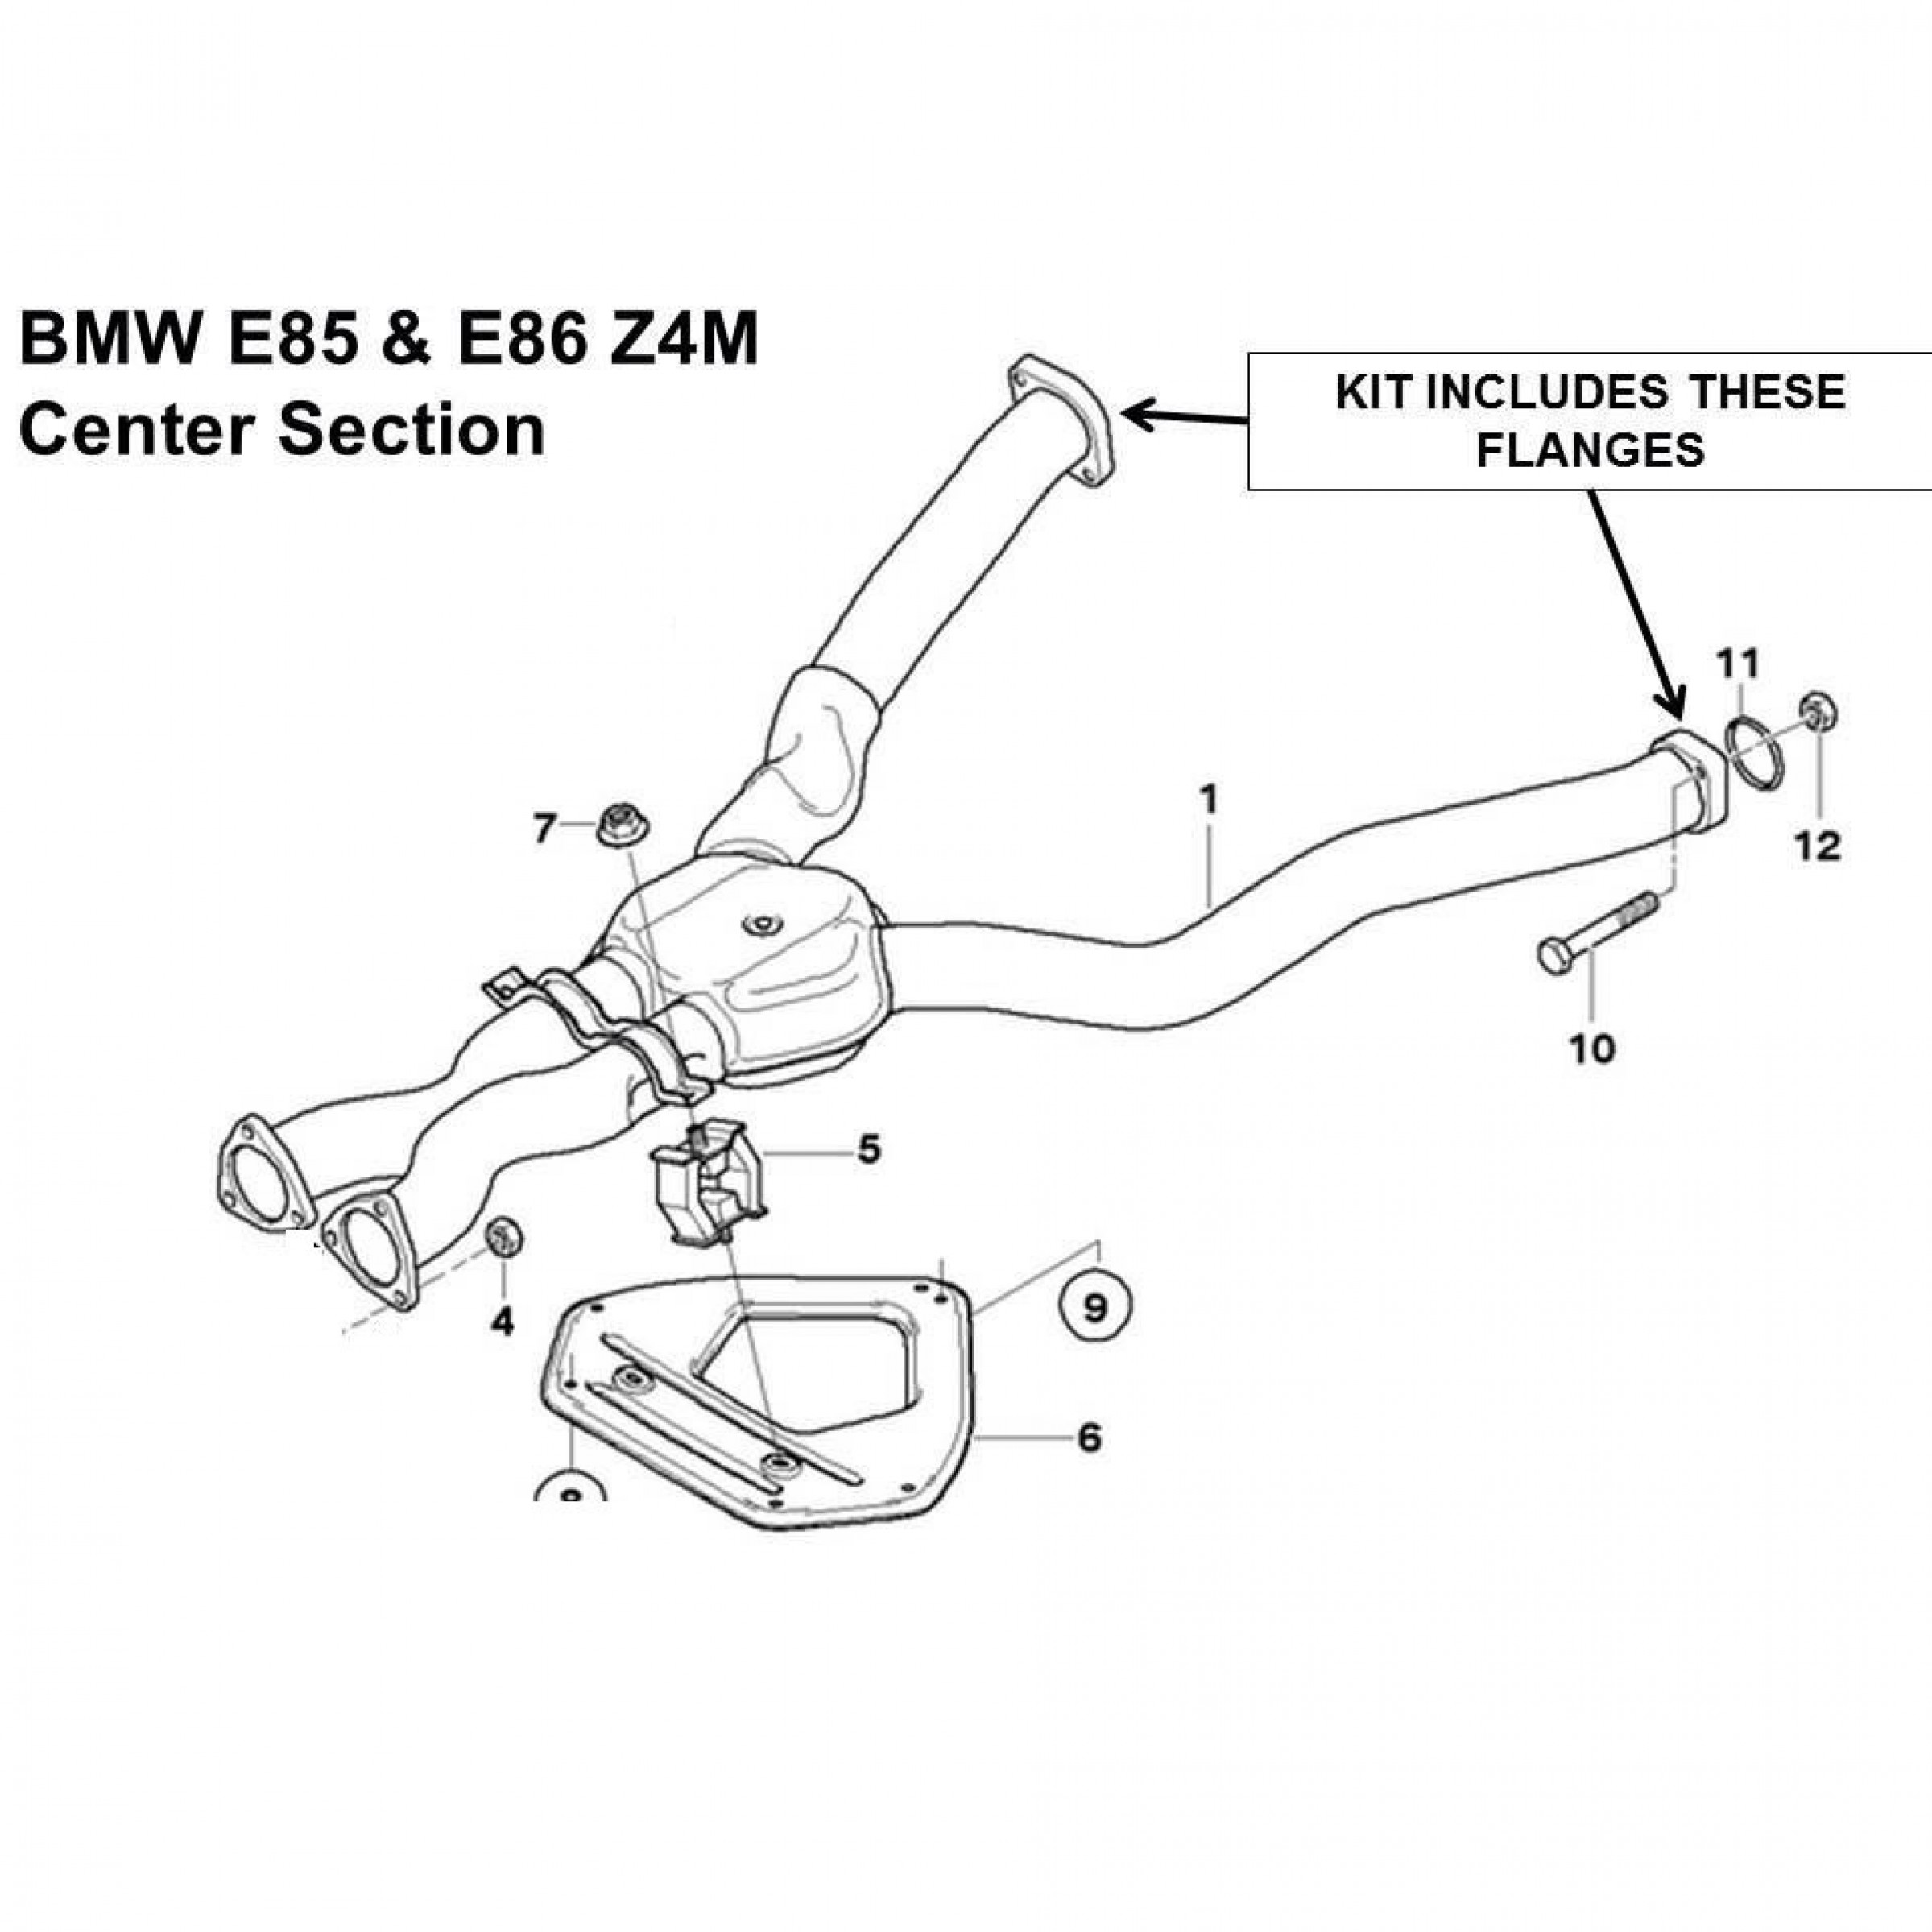 2001 Bmw X5 Exhaust Diagram Best Secret Wiring Engine Likewise Under Hood 328i Performance